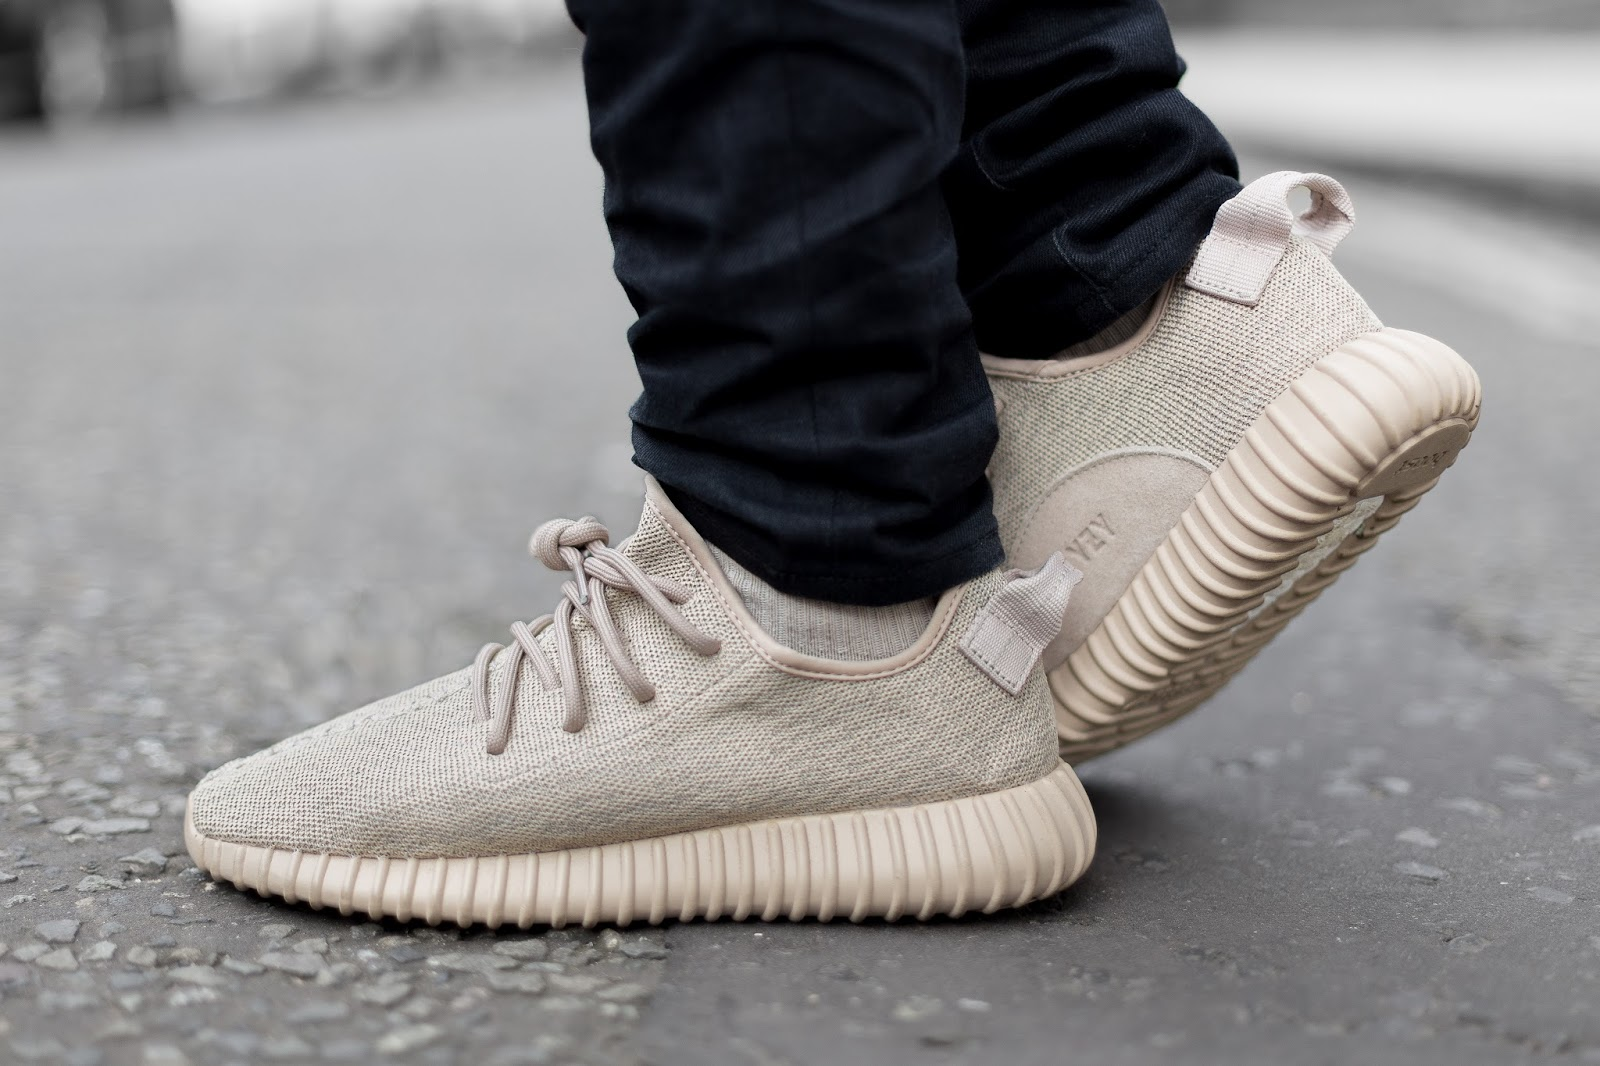 Adidas Yeezy Oxford Tan On Feet